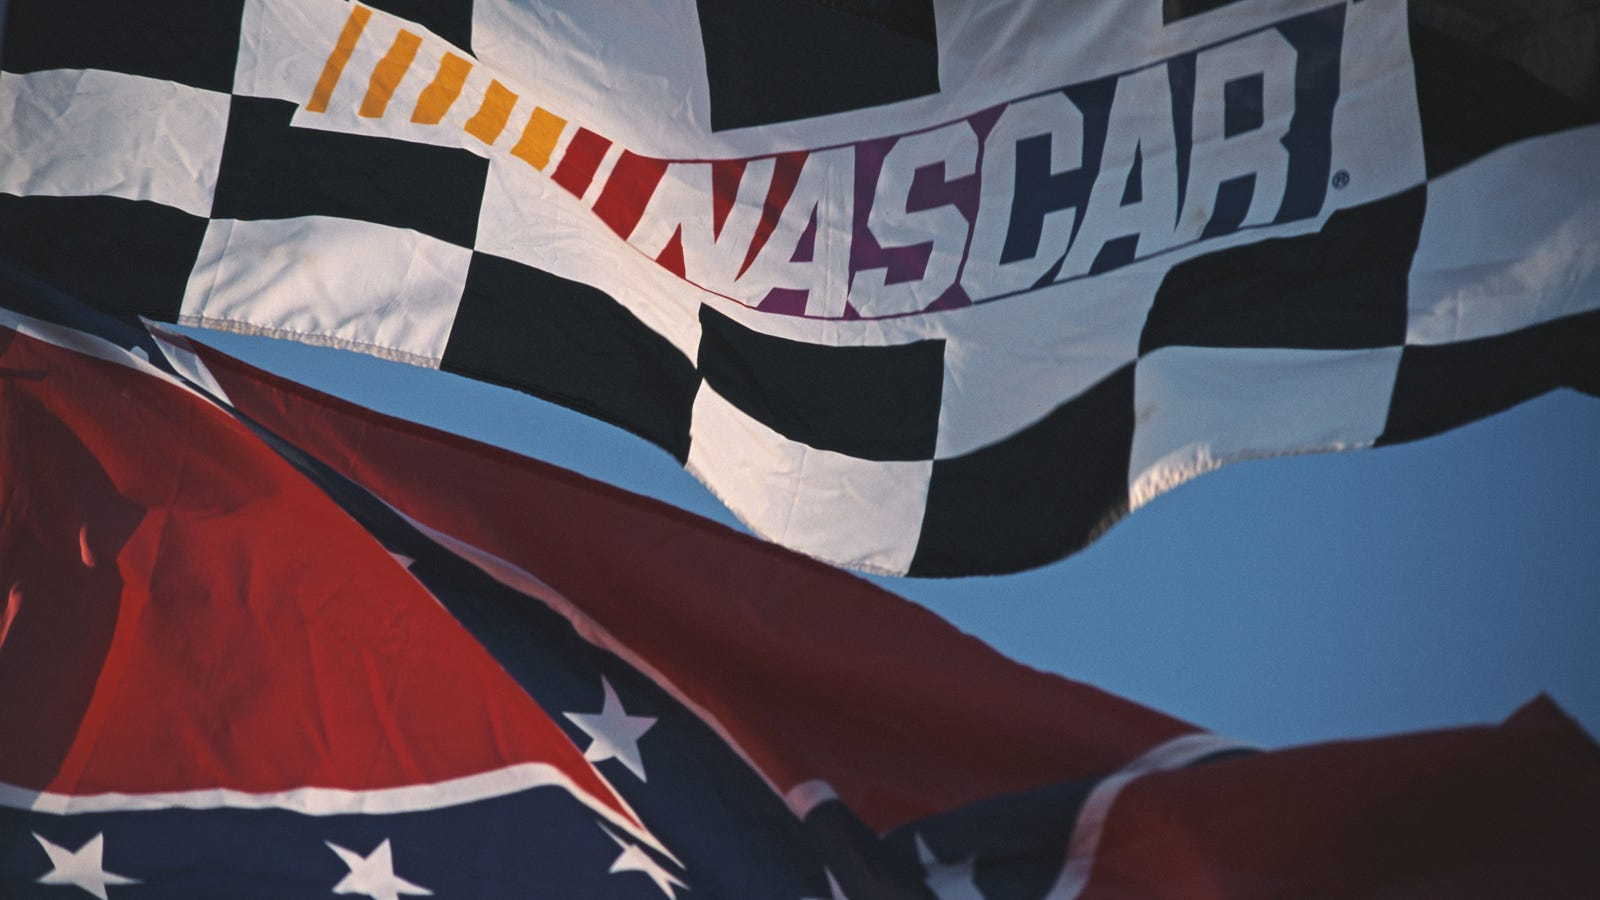 NASCAR Confirms That It's Still The Favorite Sport of White Supremacy